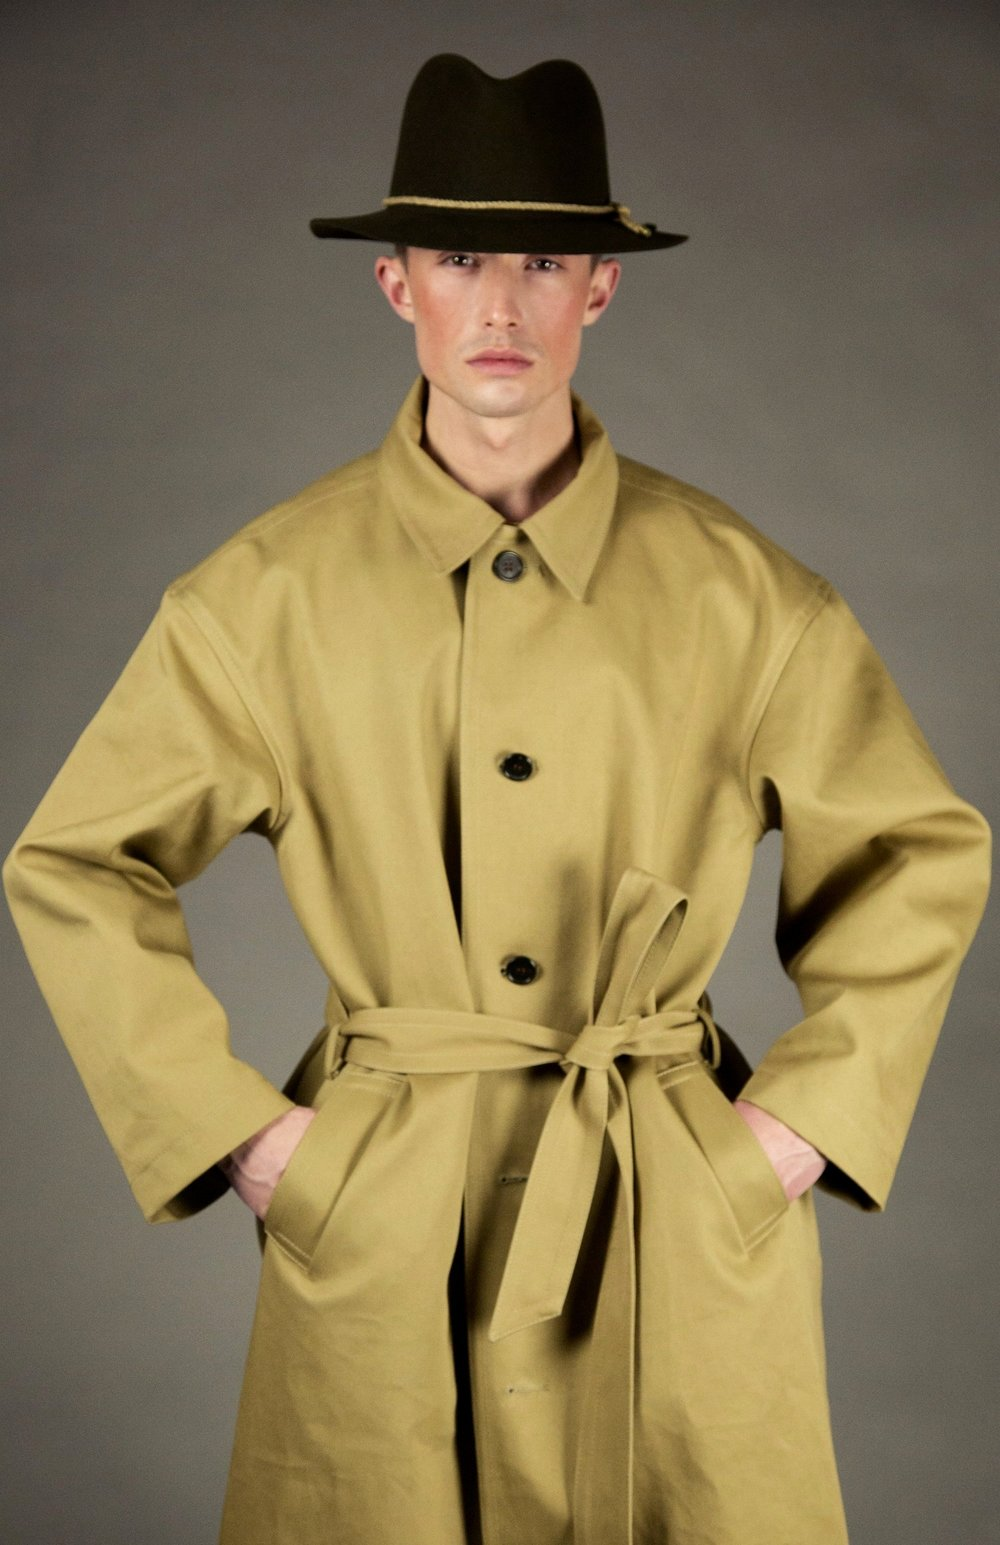 coat 3 wheat  4-button, oversized belted trench.unlined with bias piped seams.natural melange rope detail at neck. natural horn buttons. ankle length.  sizes 0-1-2-3  100% Italian super-fine cotton twill